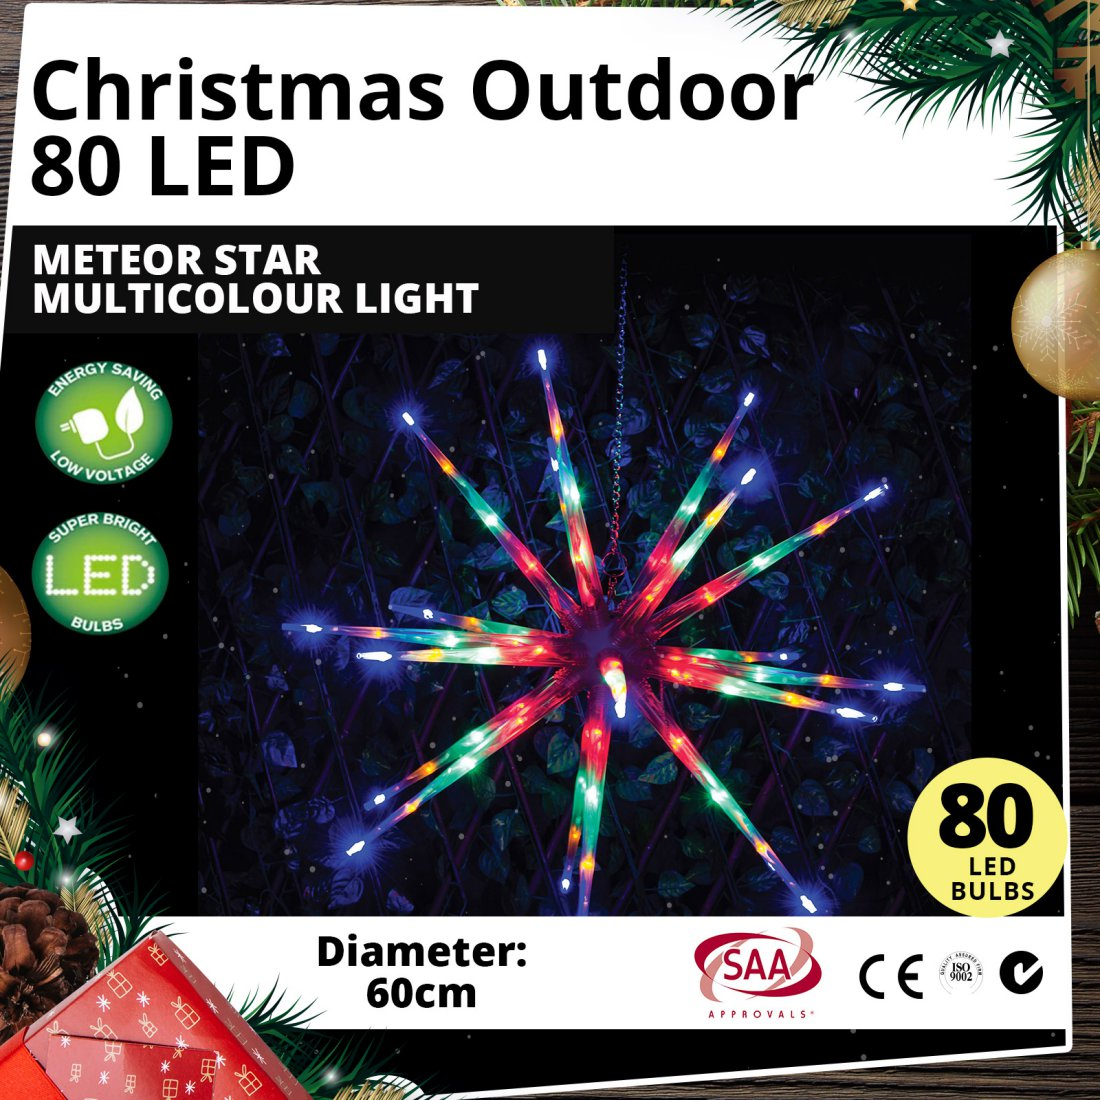 Outdoor 80 LED 60cm Meteor Star Multicolour Light Christmas Display